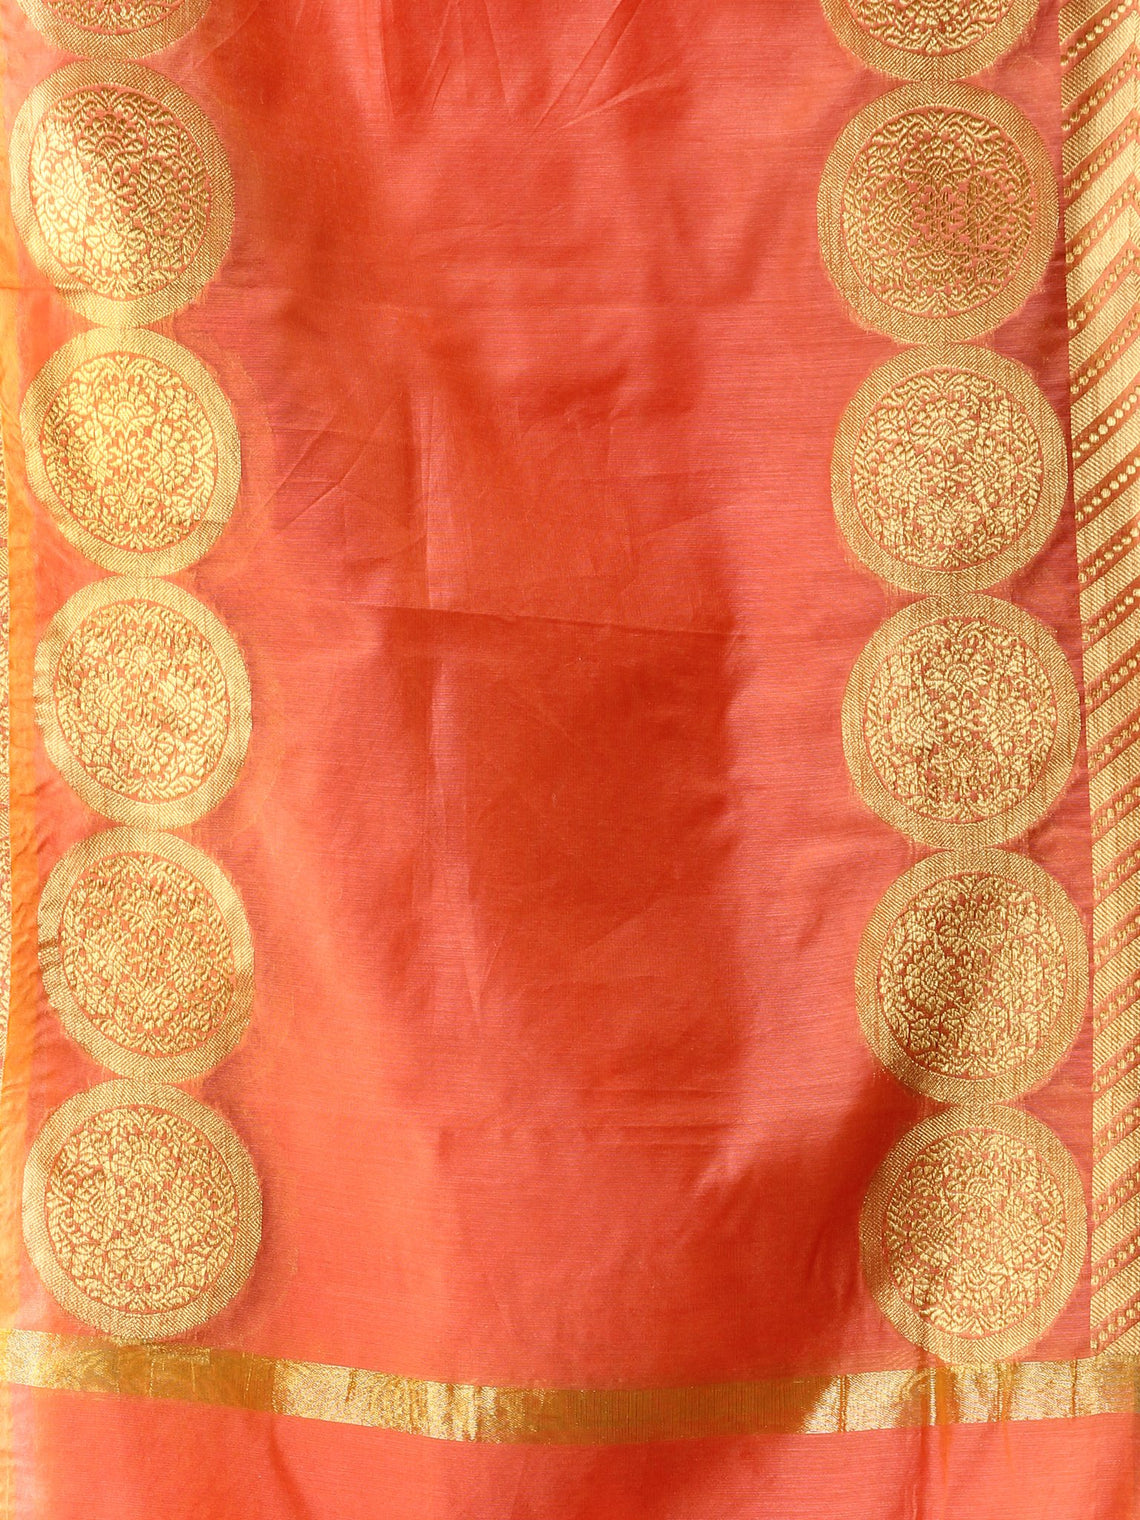 Banarasi Chanderi Dupatta With Resham Work - Peach & Gold - D04170809